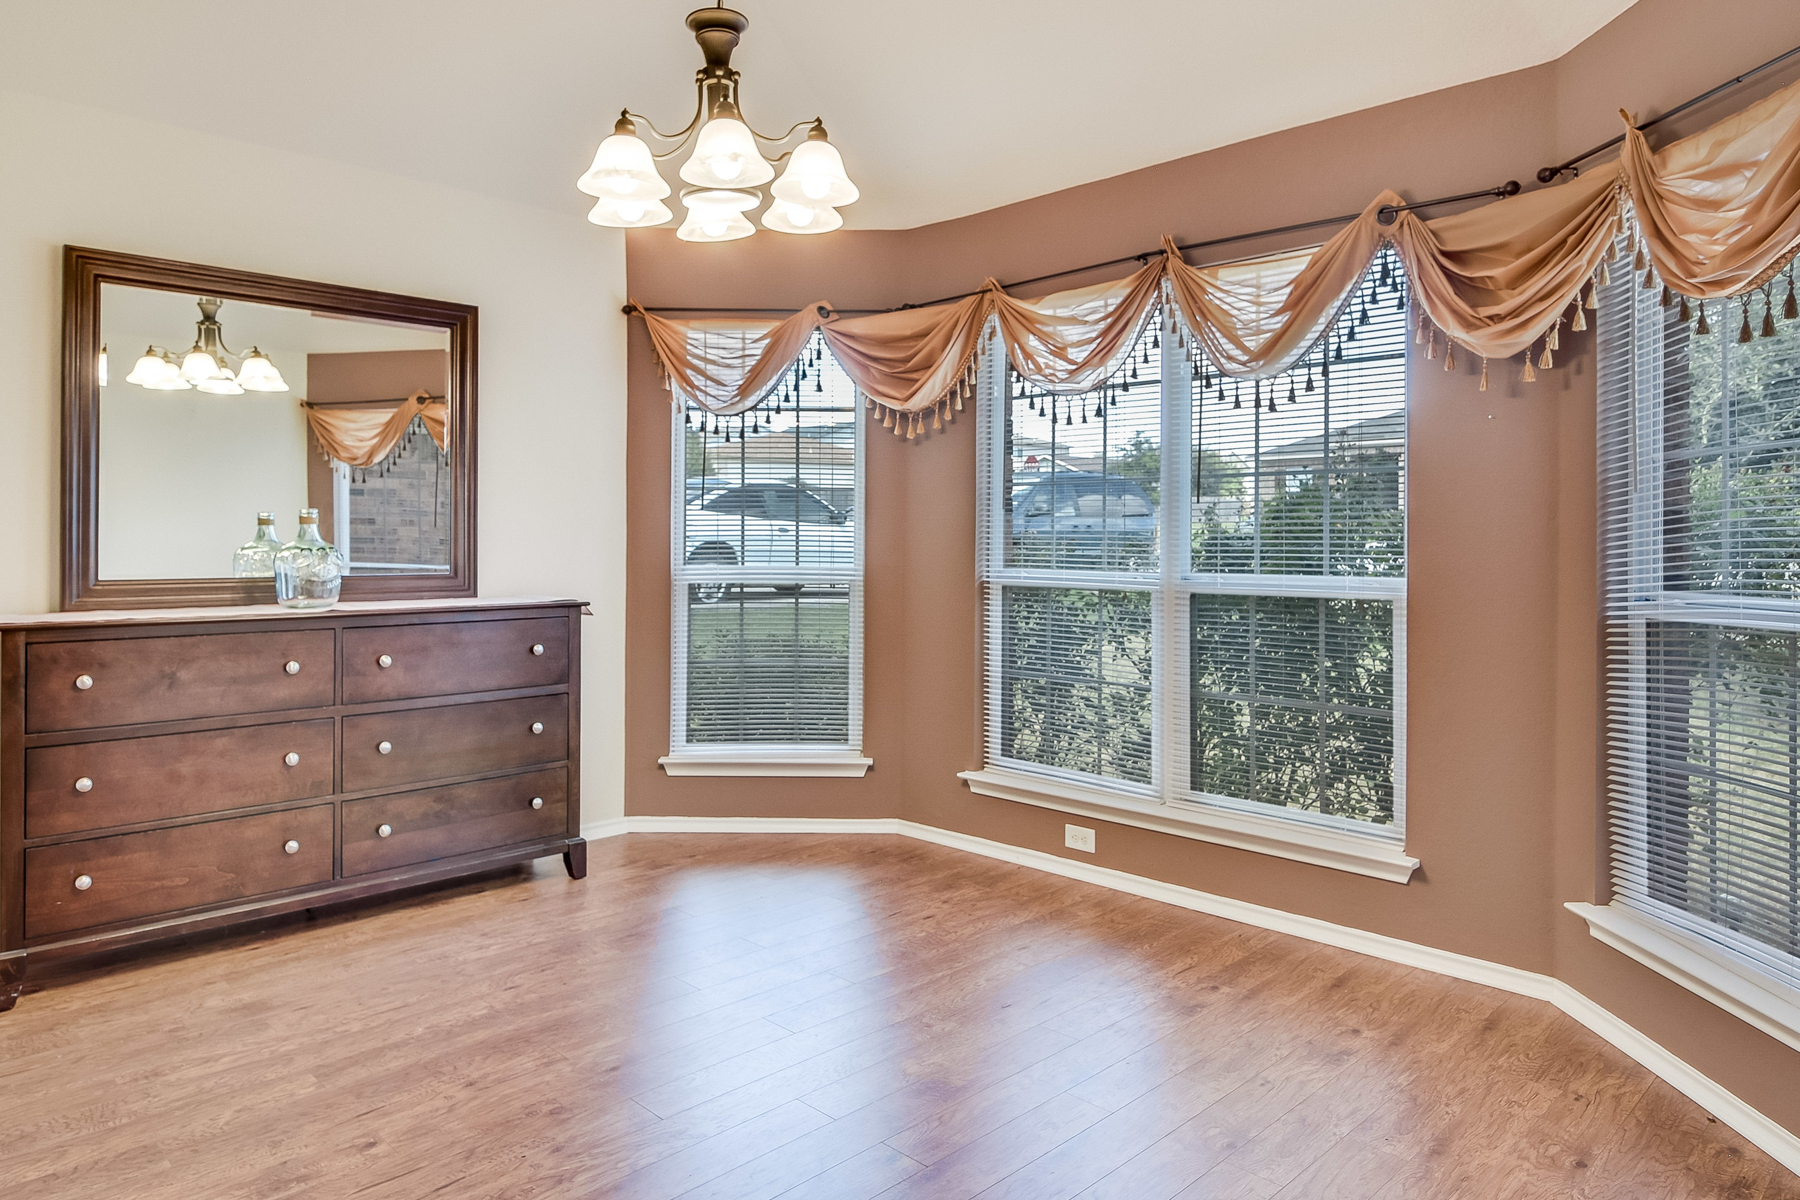 Additional photo for property listing at Cute Gem in Forest Meadows 6106 Pleasant Meadows San Antonio, Texas 78222 Estados Unidos